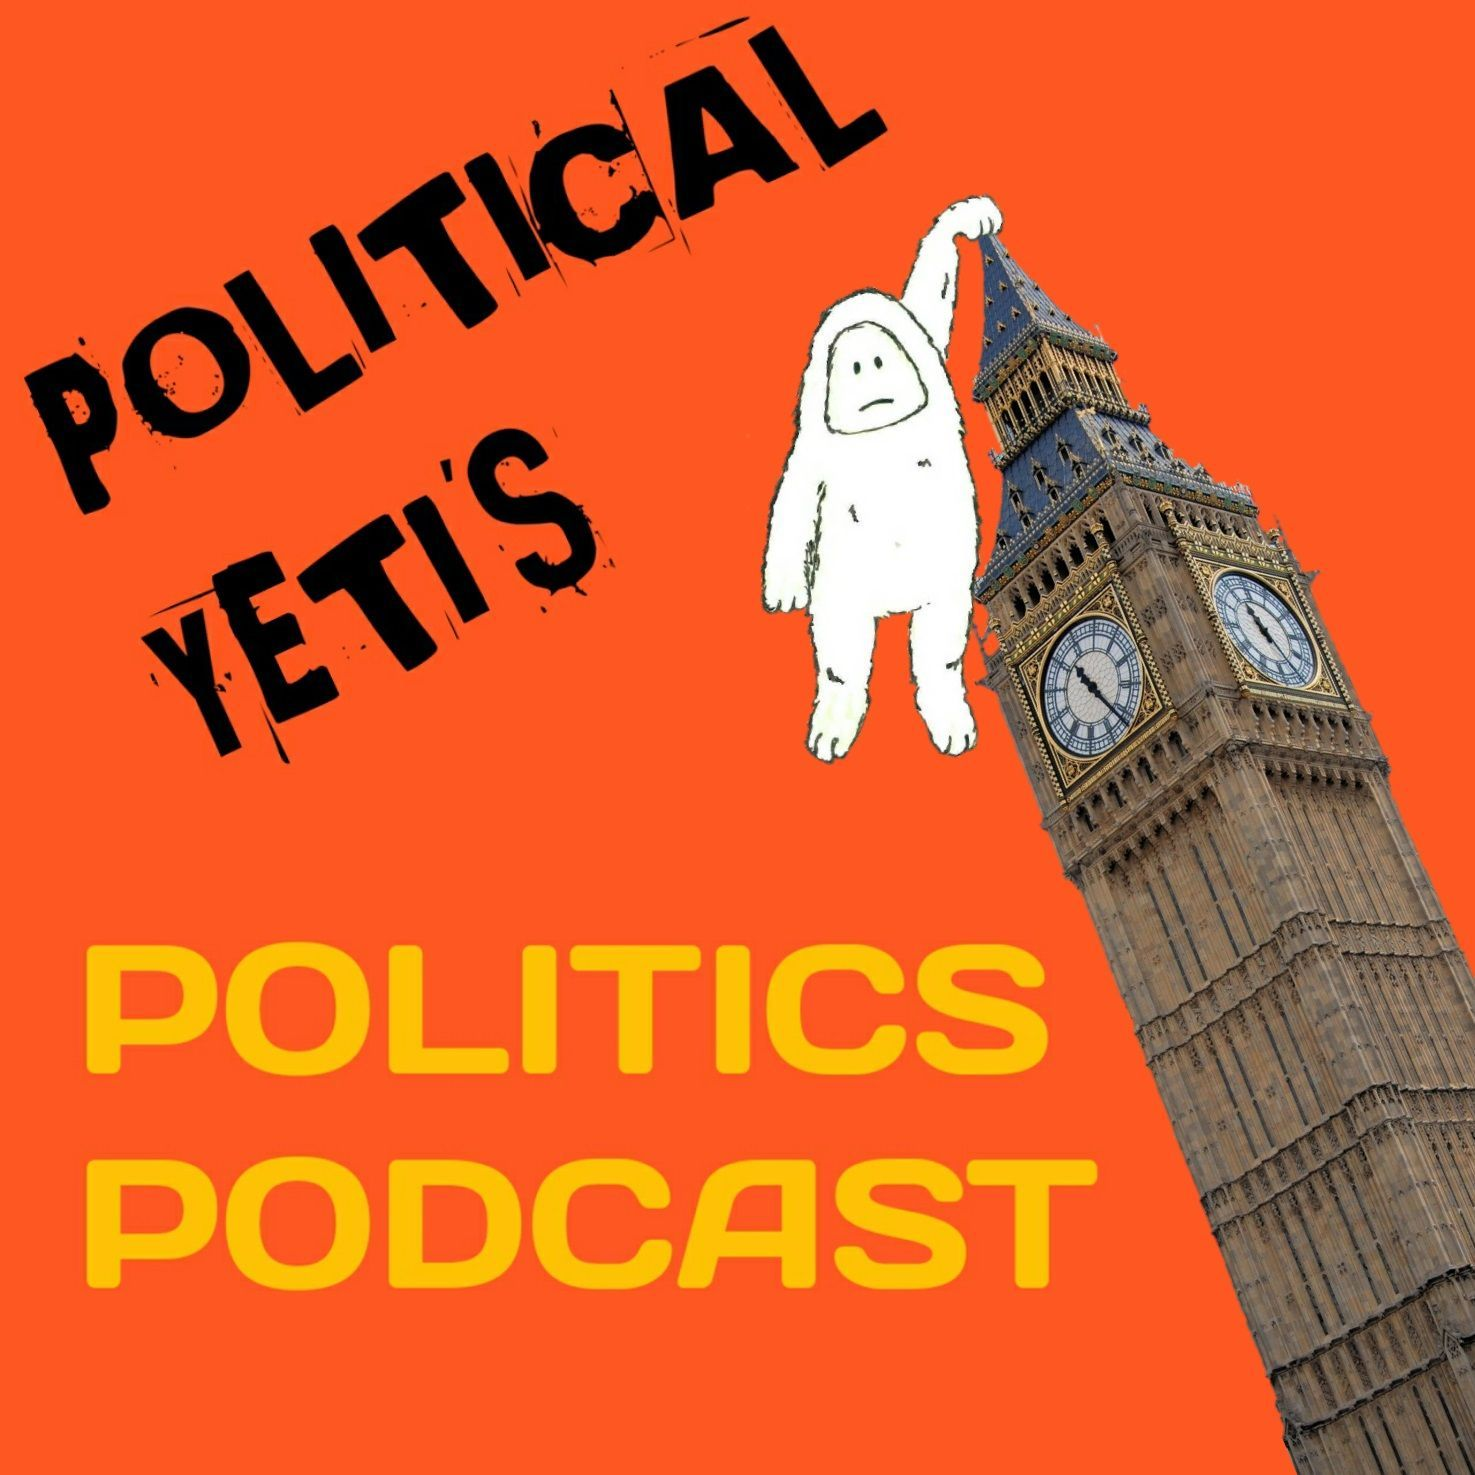 EPISODE 57: All I want for Xmas is (membership of the) EU. And Scottish independence